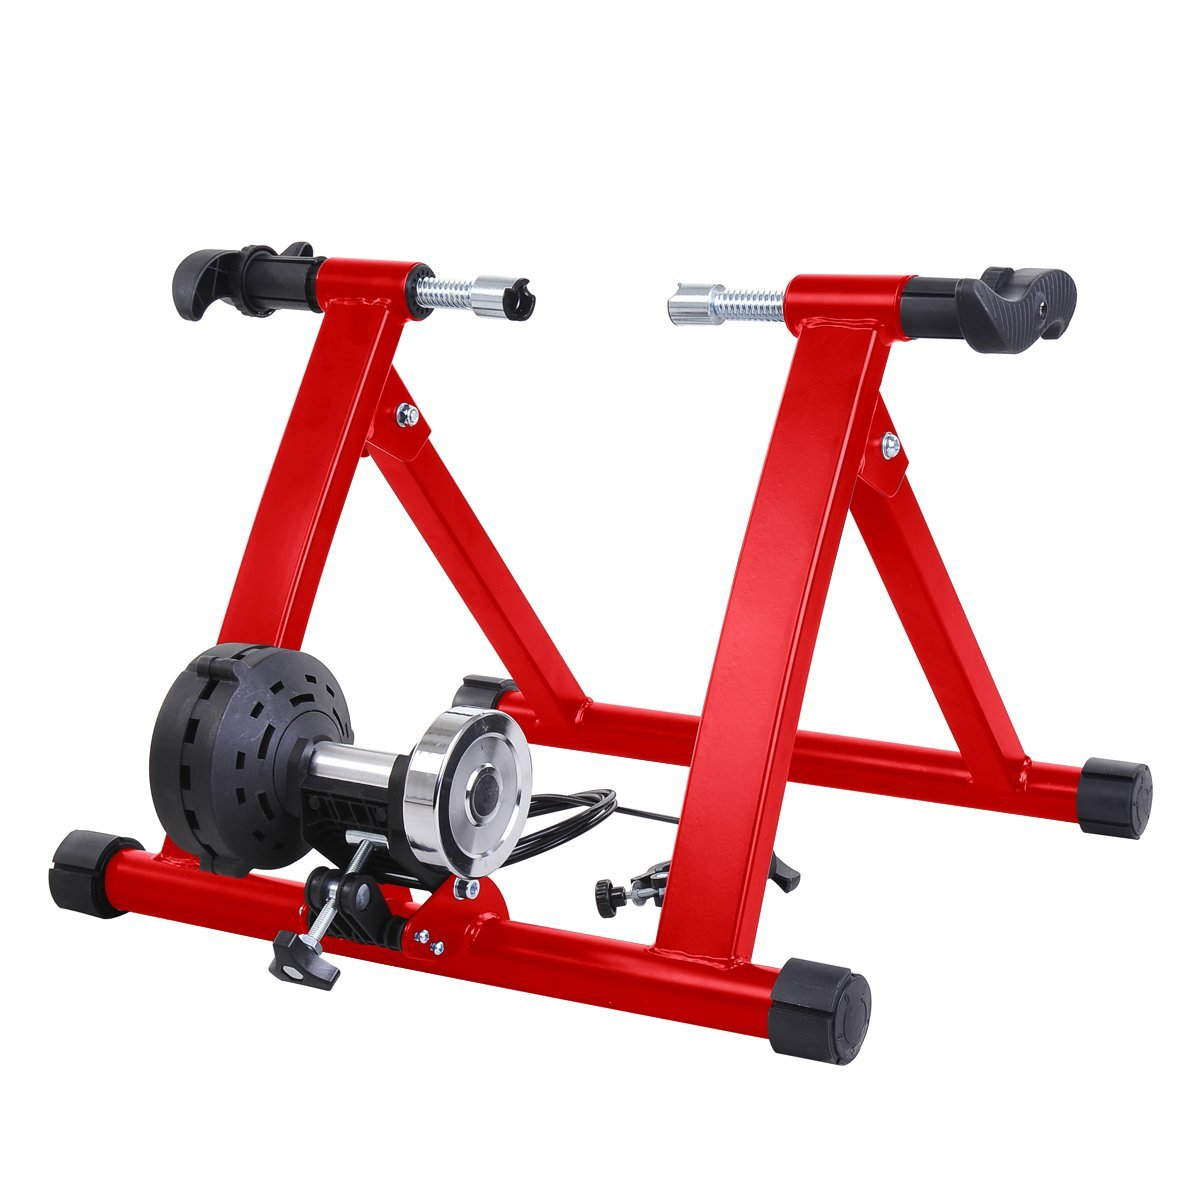 Why turbo? | Buyer's guide: turbo trainers - Road Cycling UK